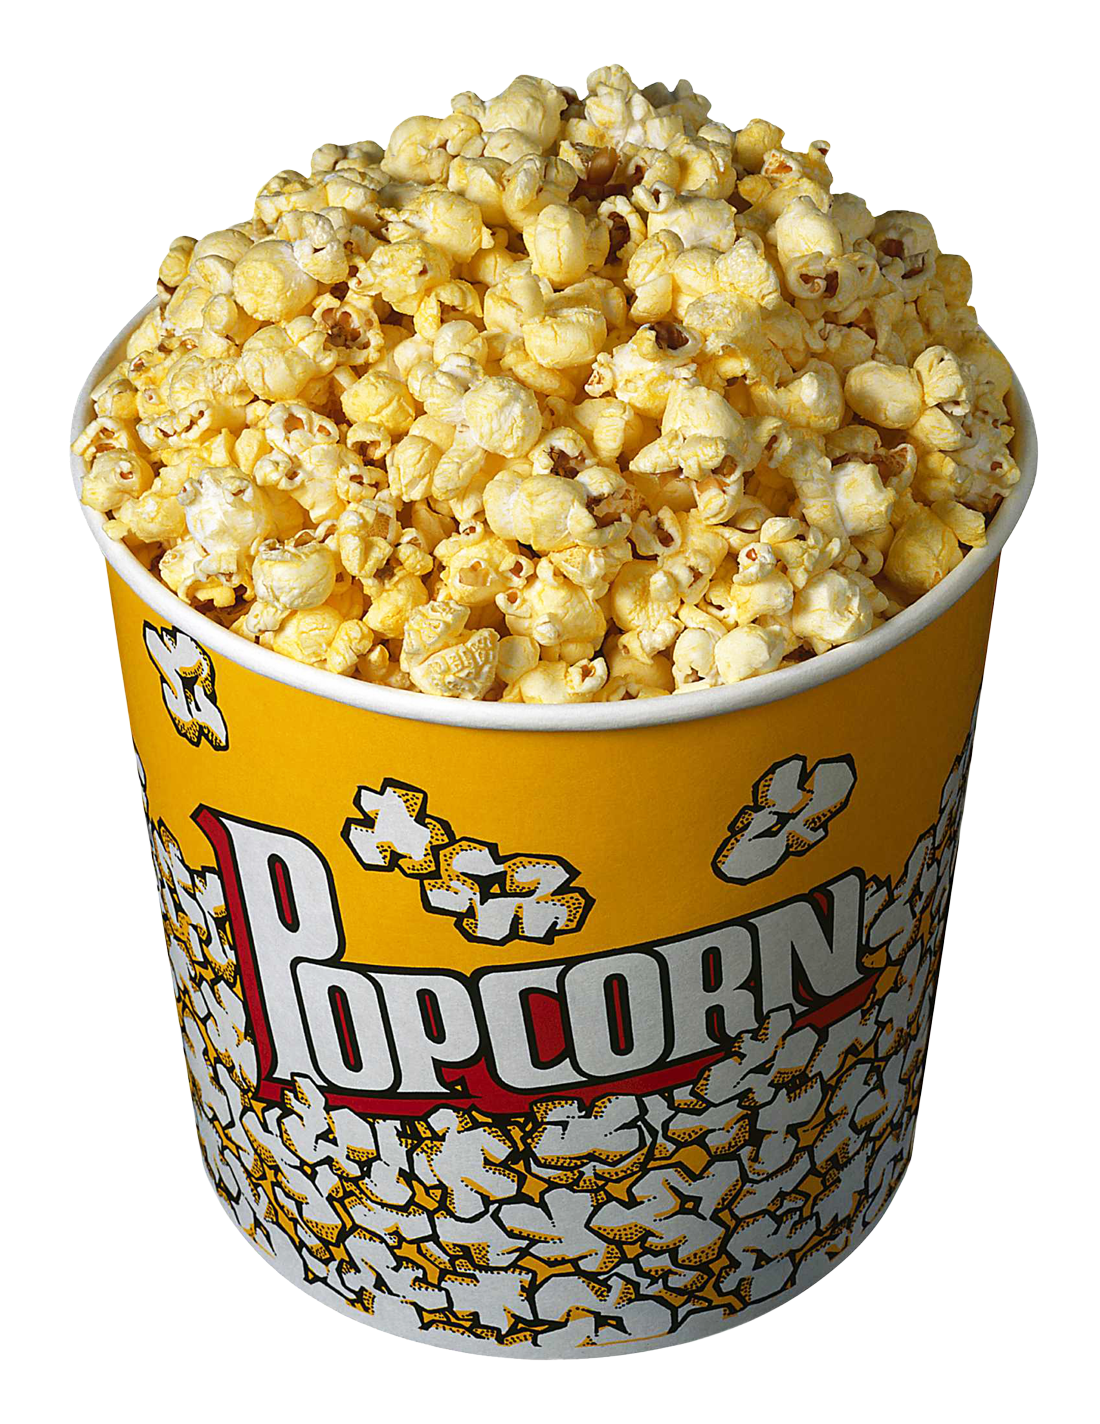 Movie clipart bowl popcorn. In bucket png image